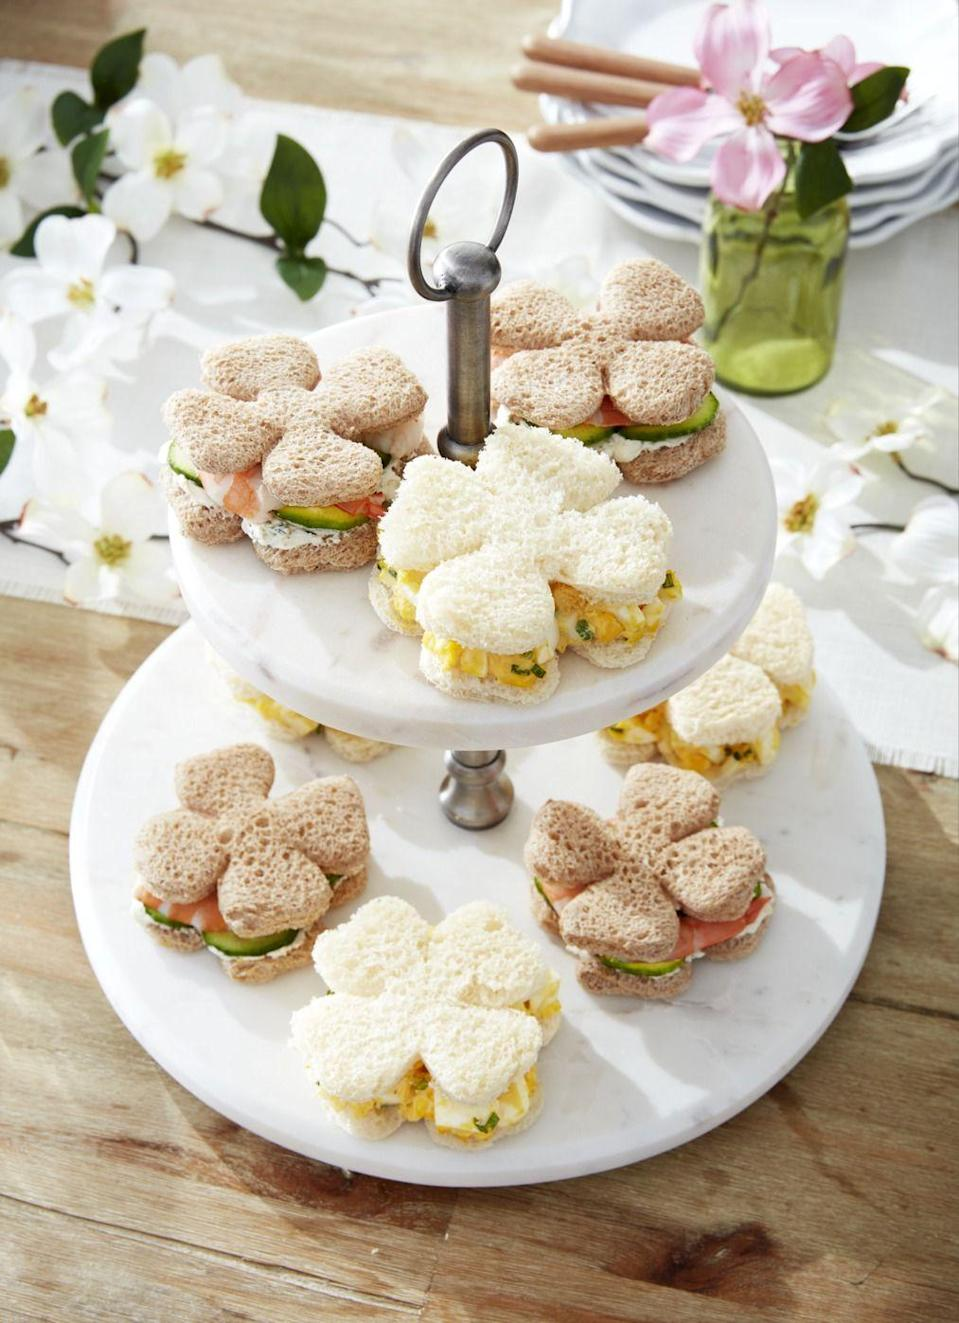 """<p>Use a clover cookie cutter and cut off the stem to make these sweet shapes, filled with your favorite ingredients, such as egg salad or salmon and cucumber.</p><p><strong><a href=""""https://www.countryliving.com/food-drinks/recipes/a33763/egg-salad-capers-red-onion-lemon-dill-recipe-wdy0513/"""" rel=""""nofollow noopener"""" target=""""_blank"""" data-ylk=""""slk:Get the recipe for egg salad"""" class=""""link rapid-noclick-resp"""">Get the recipe for egg salad</a>.</strong></p><p><a class=""""link rapid-noclick-resp"""" href=""""https://www.amazon.com/Cupcake-Plastic-Serving-Dessert-Birthday/dp/B07TLKBZJ6/?tag=syn-yahoo-20&ascsubtag=%5Bartid%7C10050.g.1642%5Bsrc%7Cyahoo-us"""" rel=""""nofollow noopener"""" target=""""_blank"""" data-ylk=""""slk:SHOP TIERED STAND"""">SHOP TIERED STAND</a></p>"""